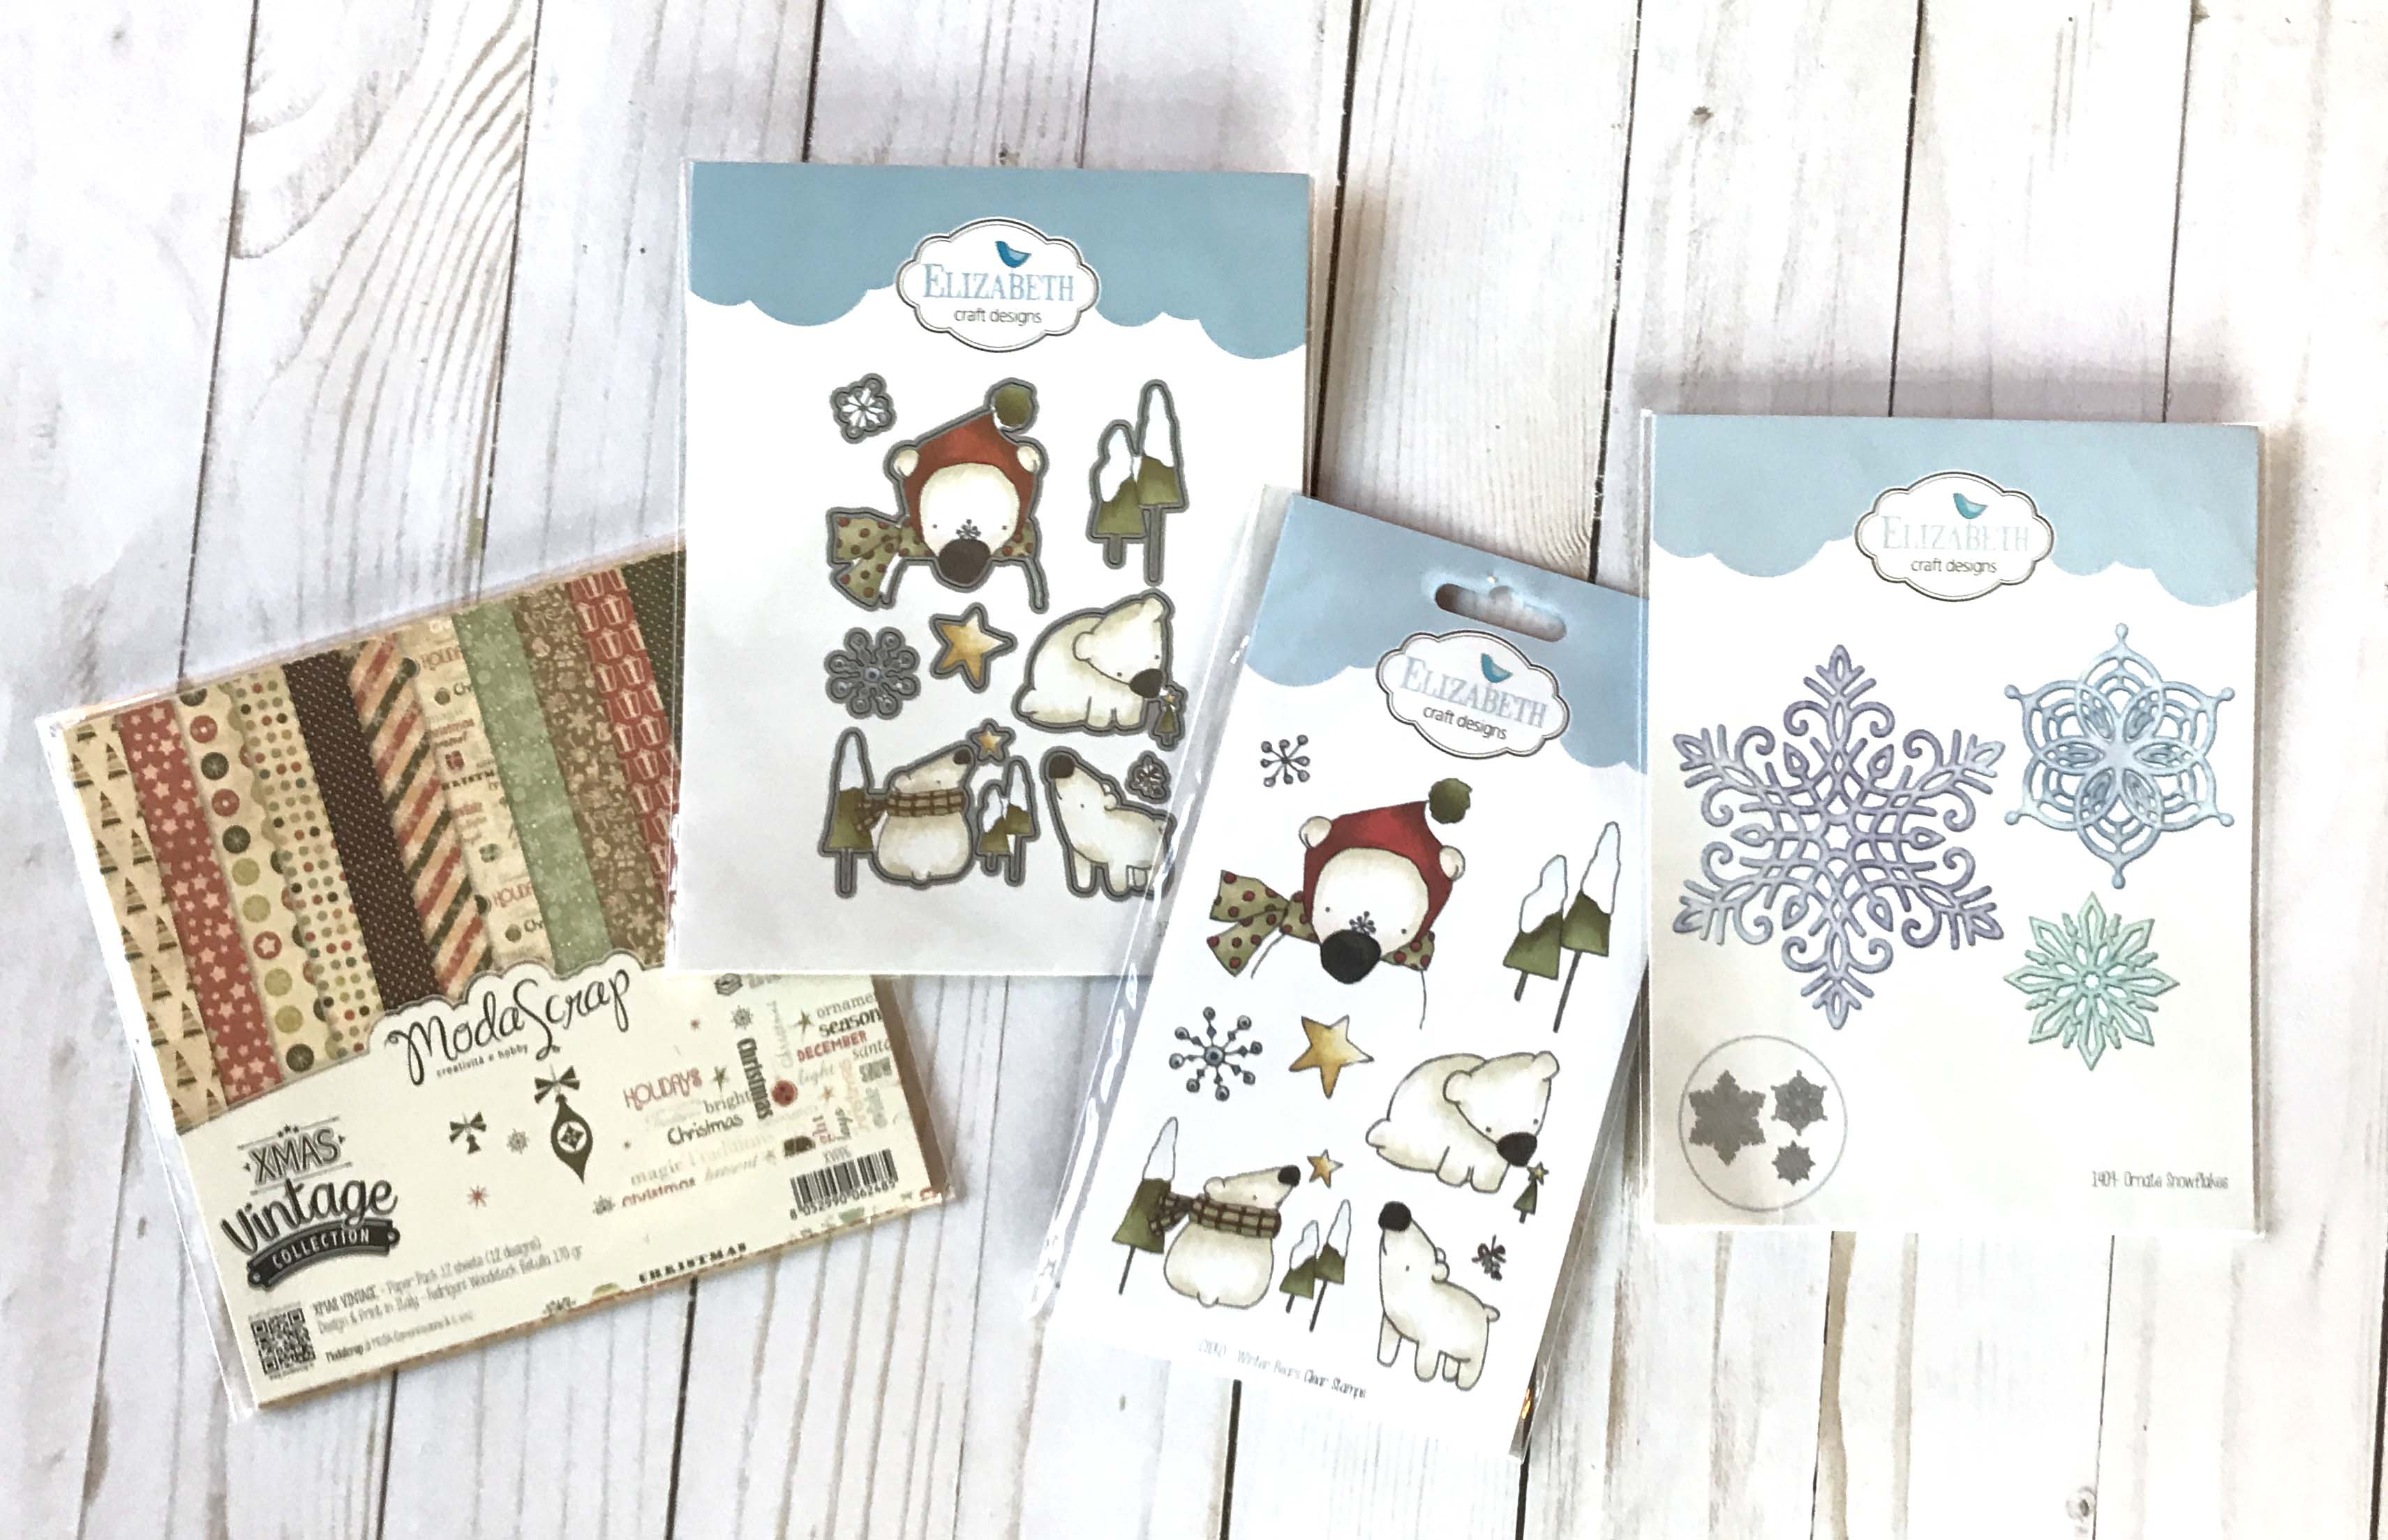 12 Days of Giving | Christmas Giveaway | Creative Scrapbooker Magazine | Featuring Elizabeth Craft Designs